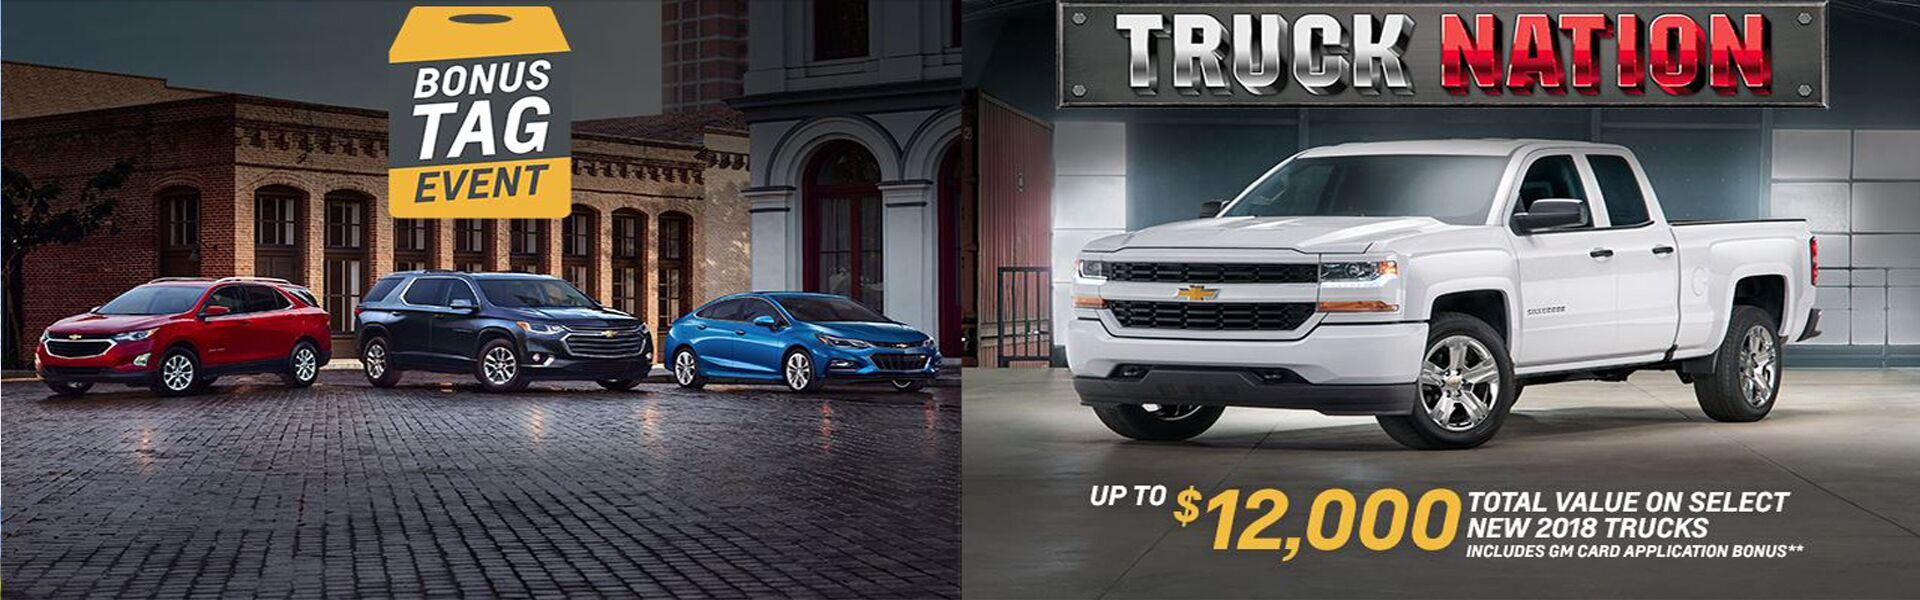 Chevy Truck Month & Bonus Tag